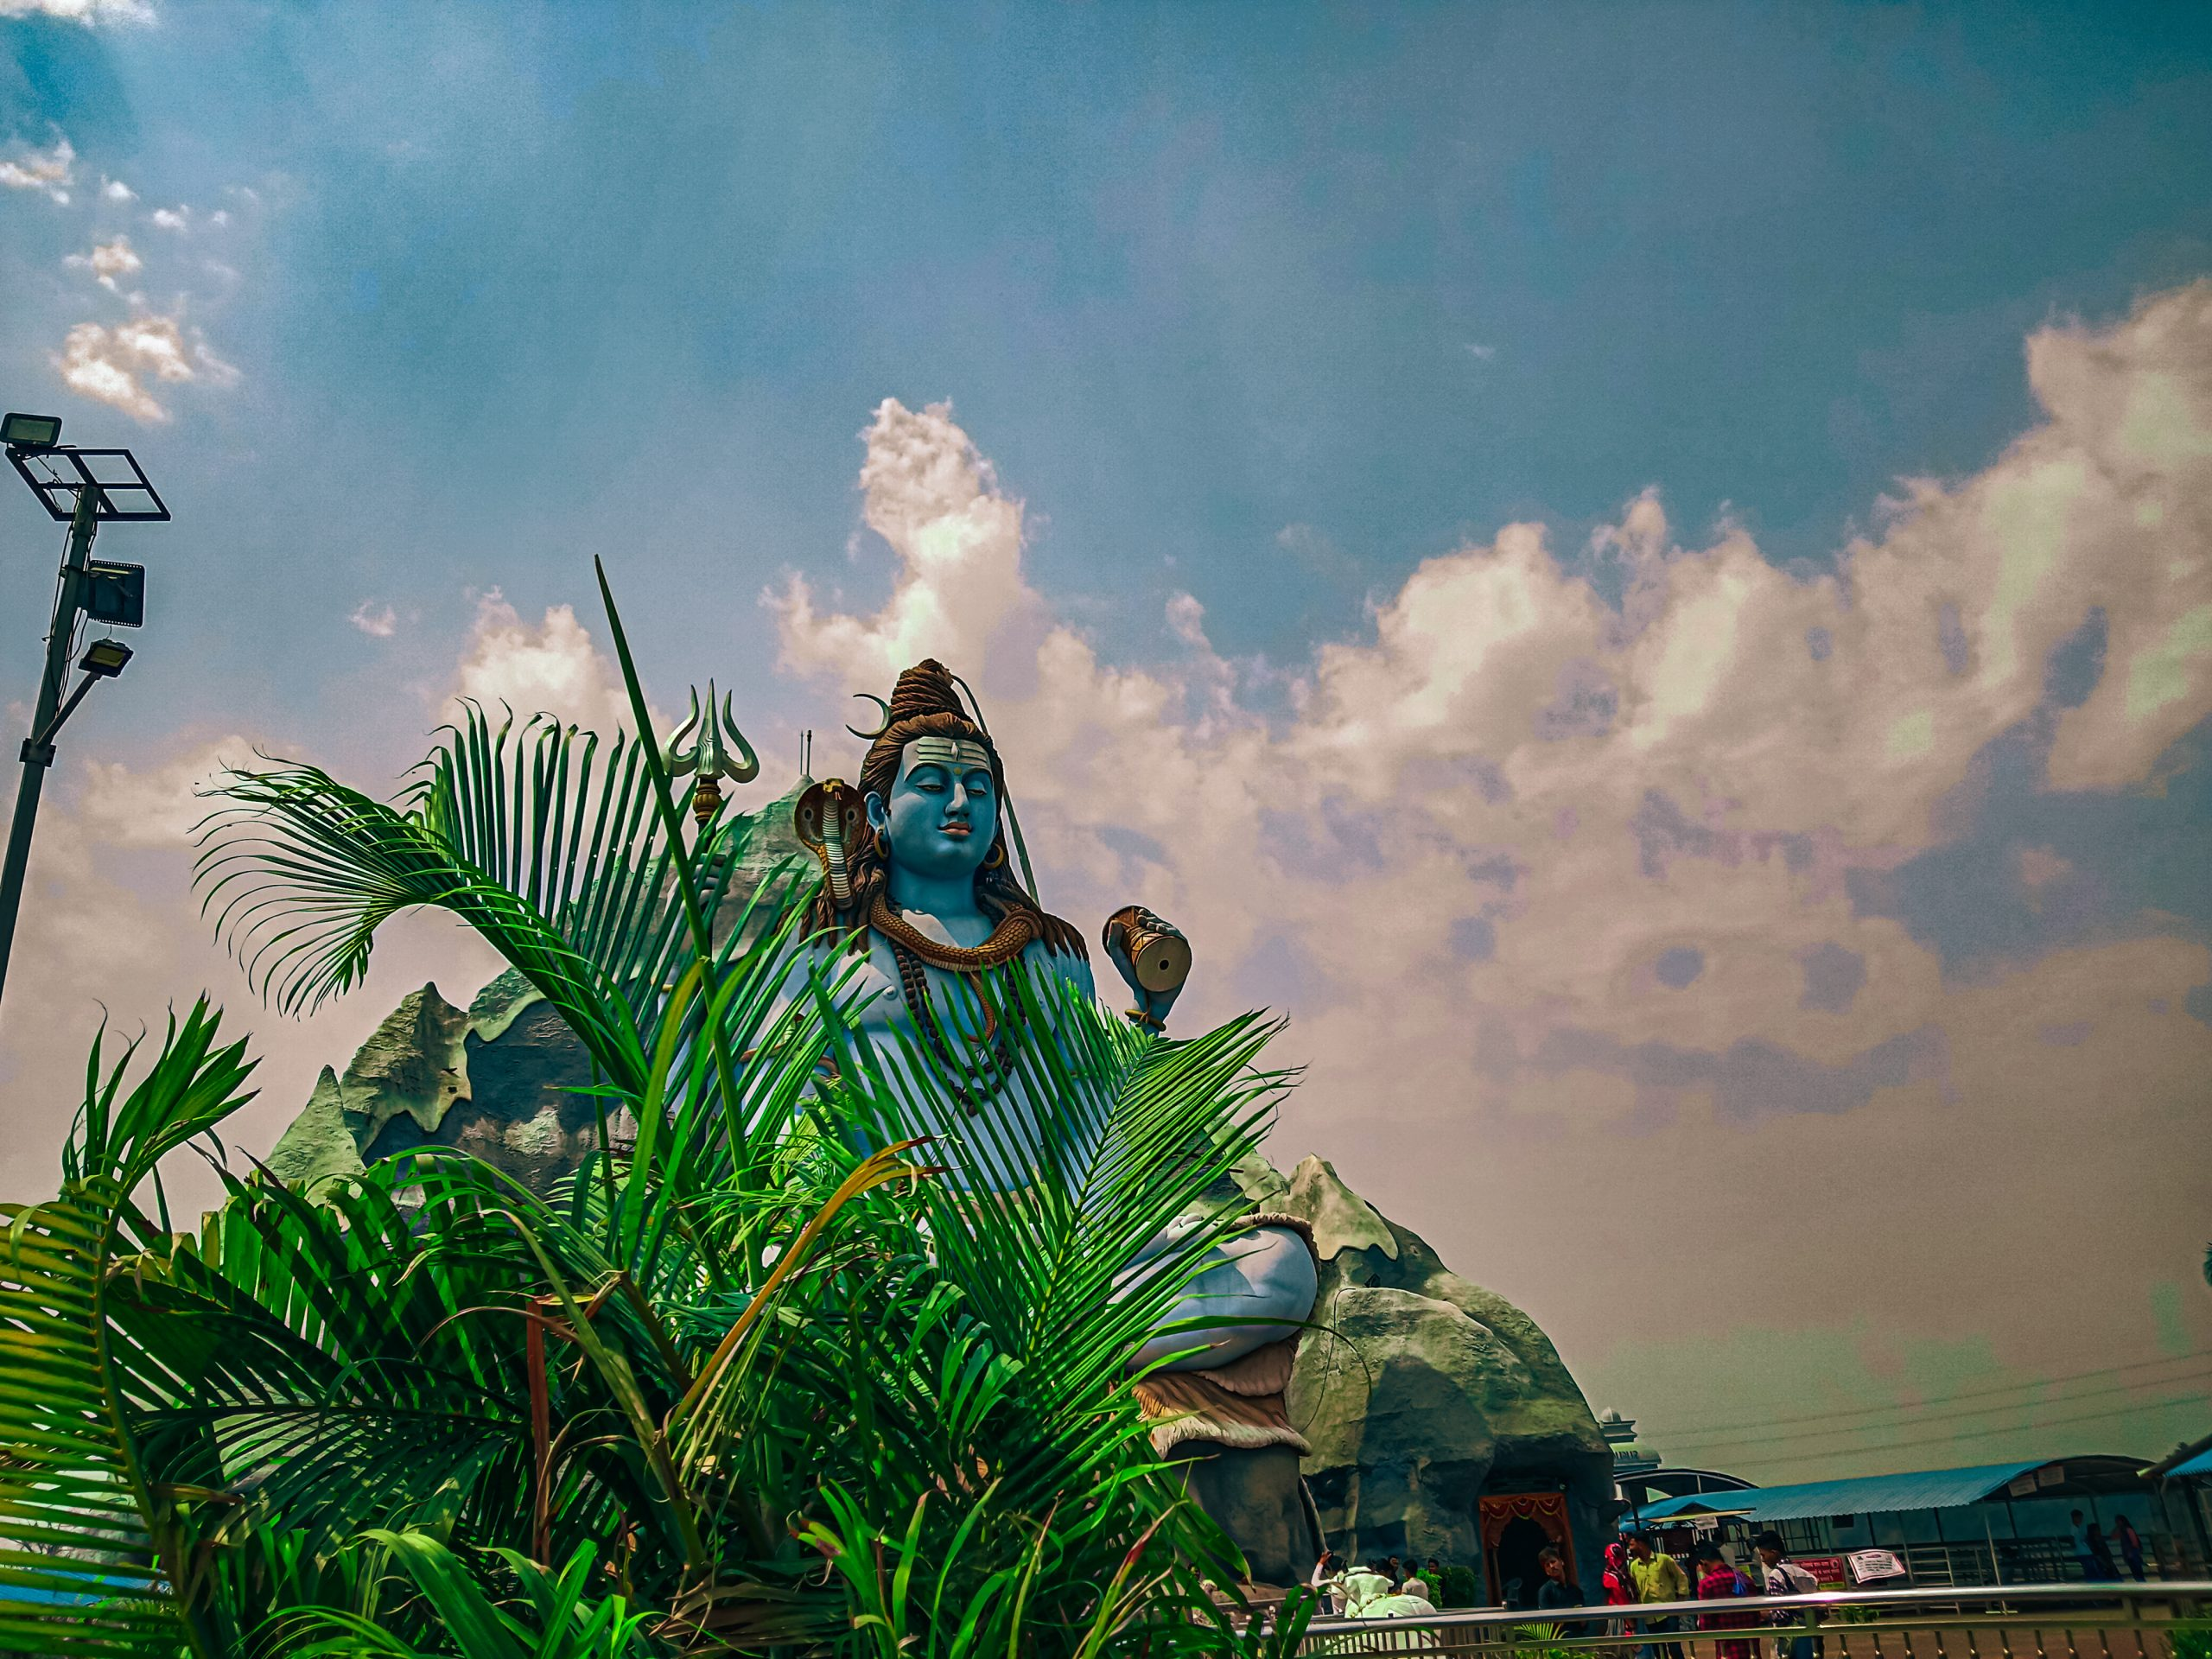 Beautiful Lord Shiva statue under blue sky